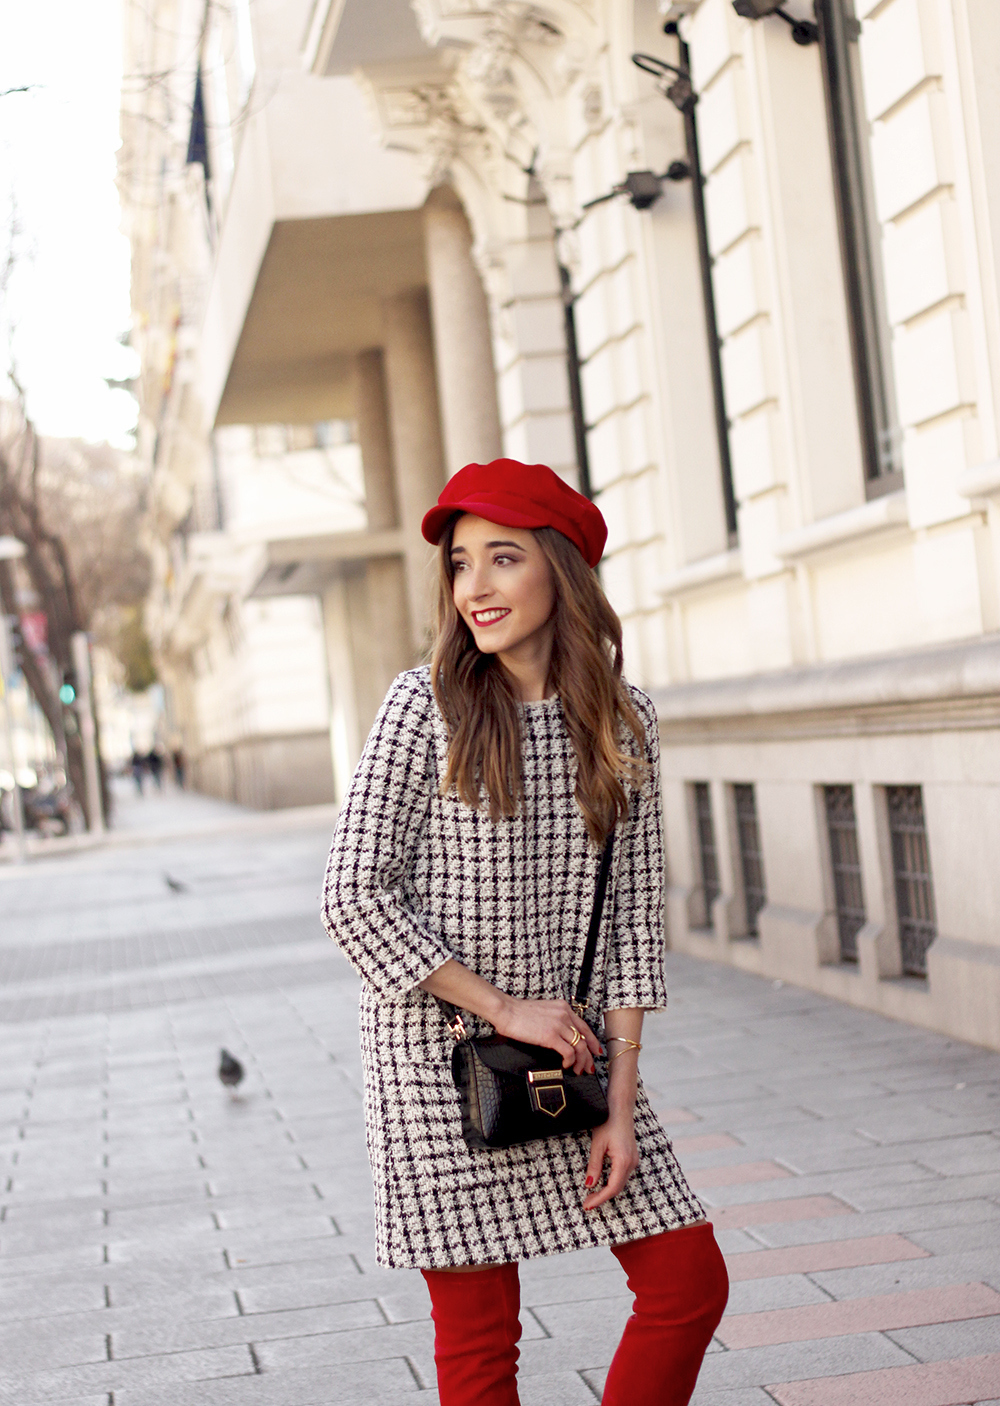 squares dress red over the knee boots givenchy bag red cap winter outfit look invierno08